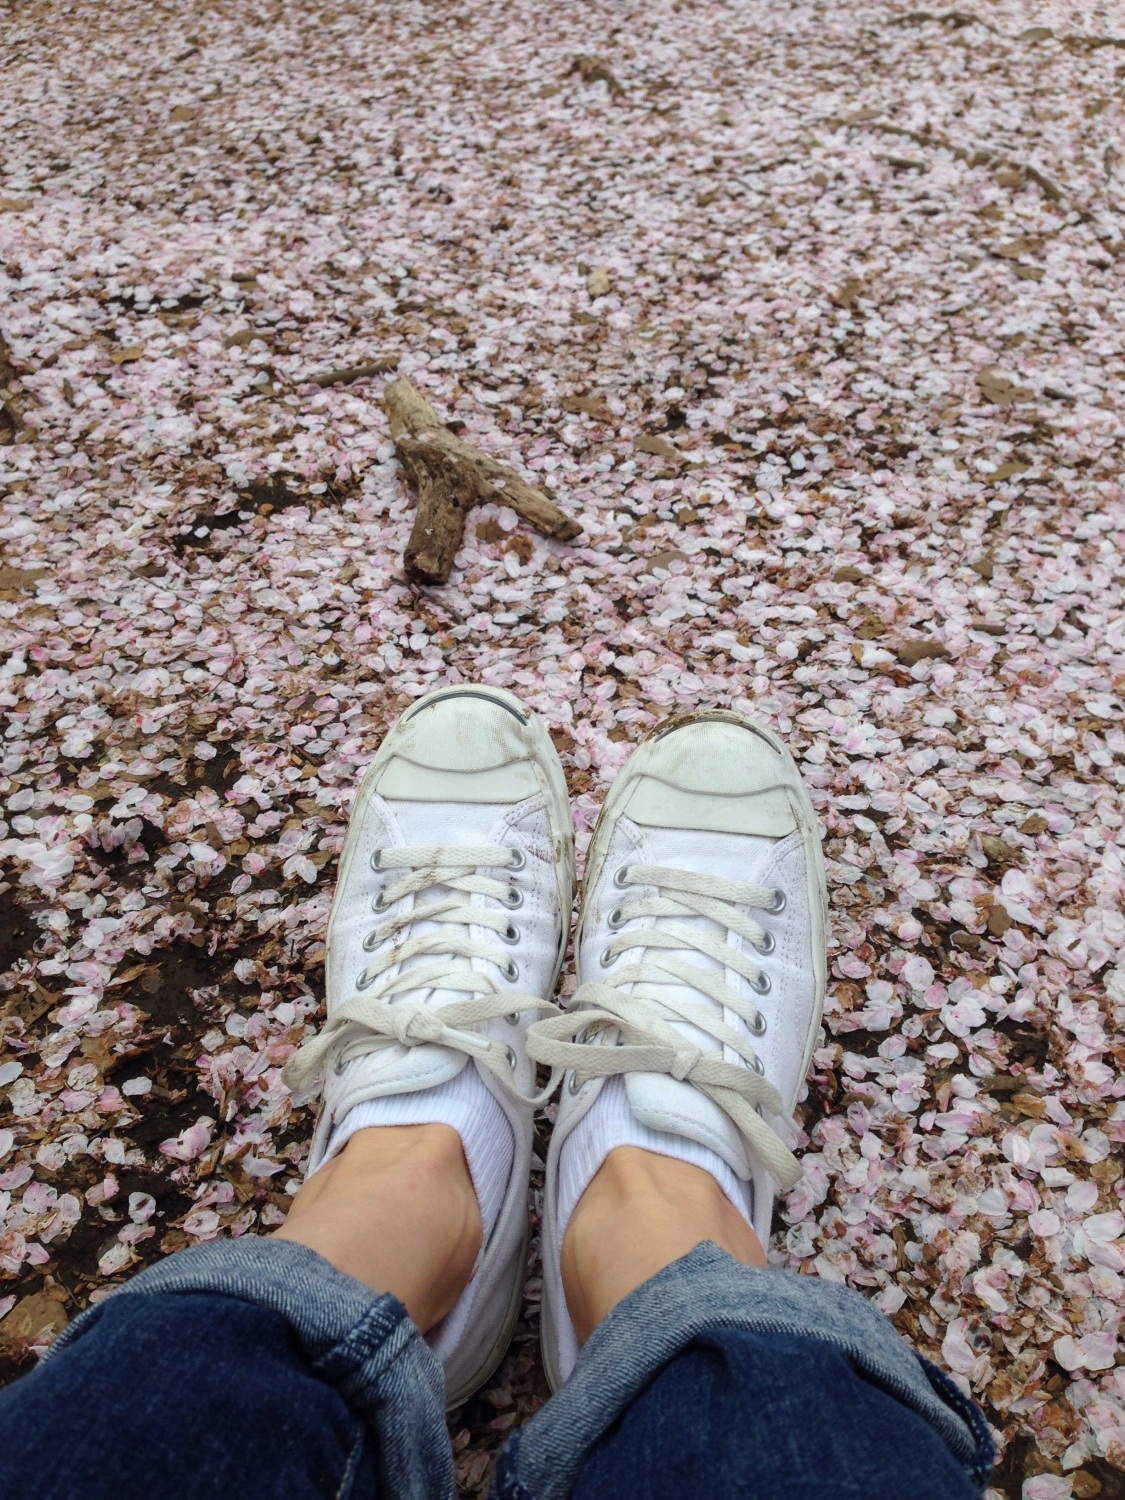 Carpet of cherry blossoms